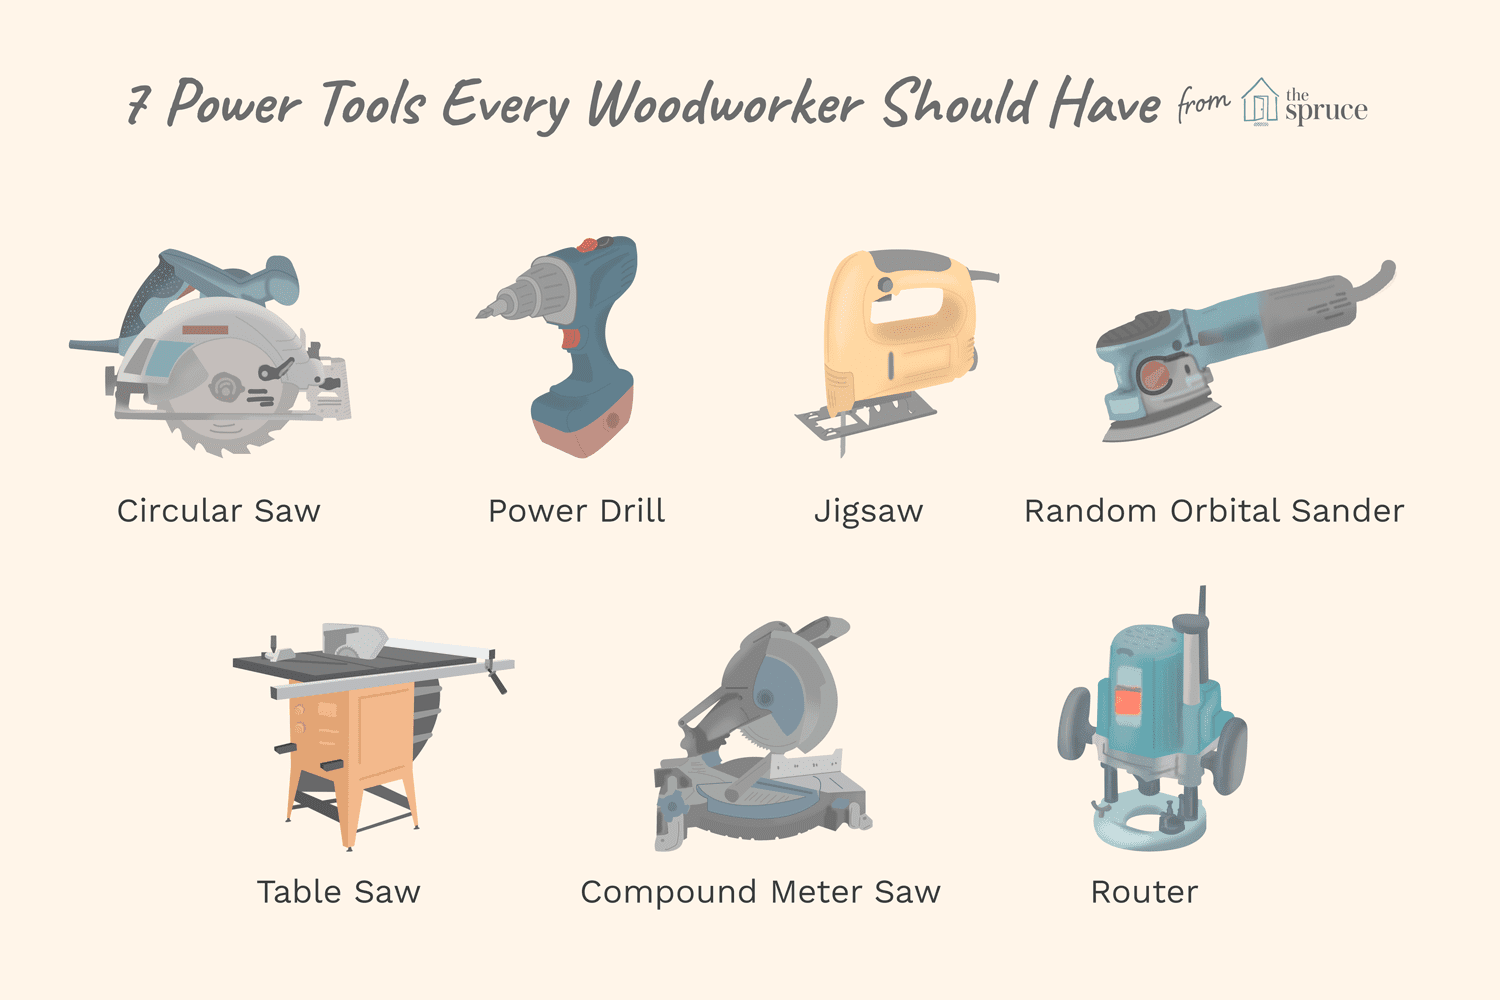 7 Power Tools Every Woodworker Should Have